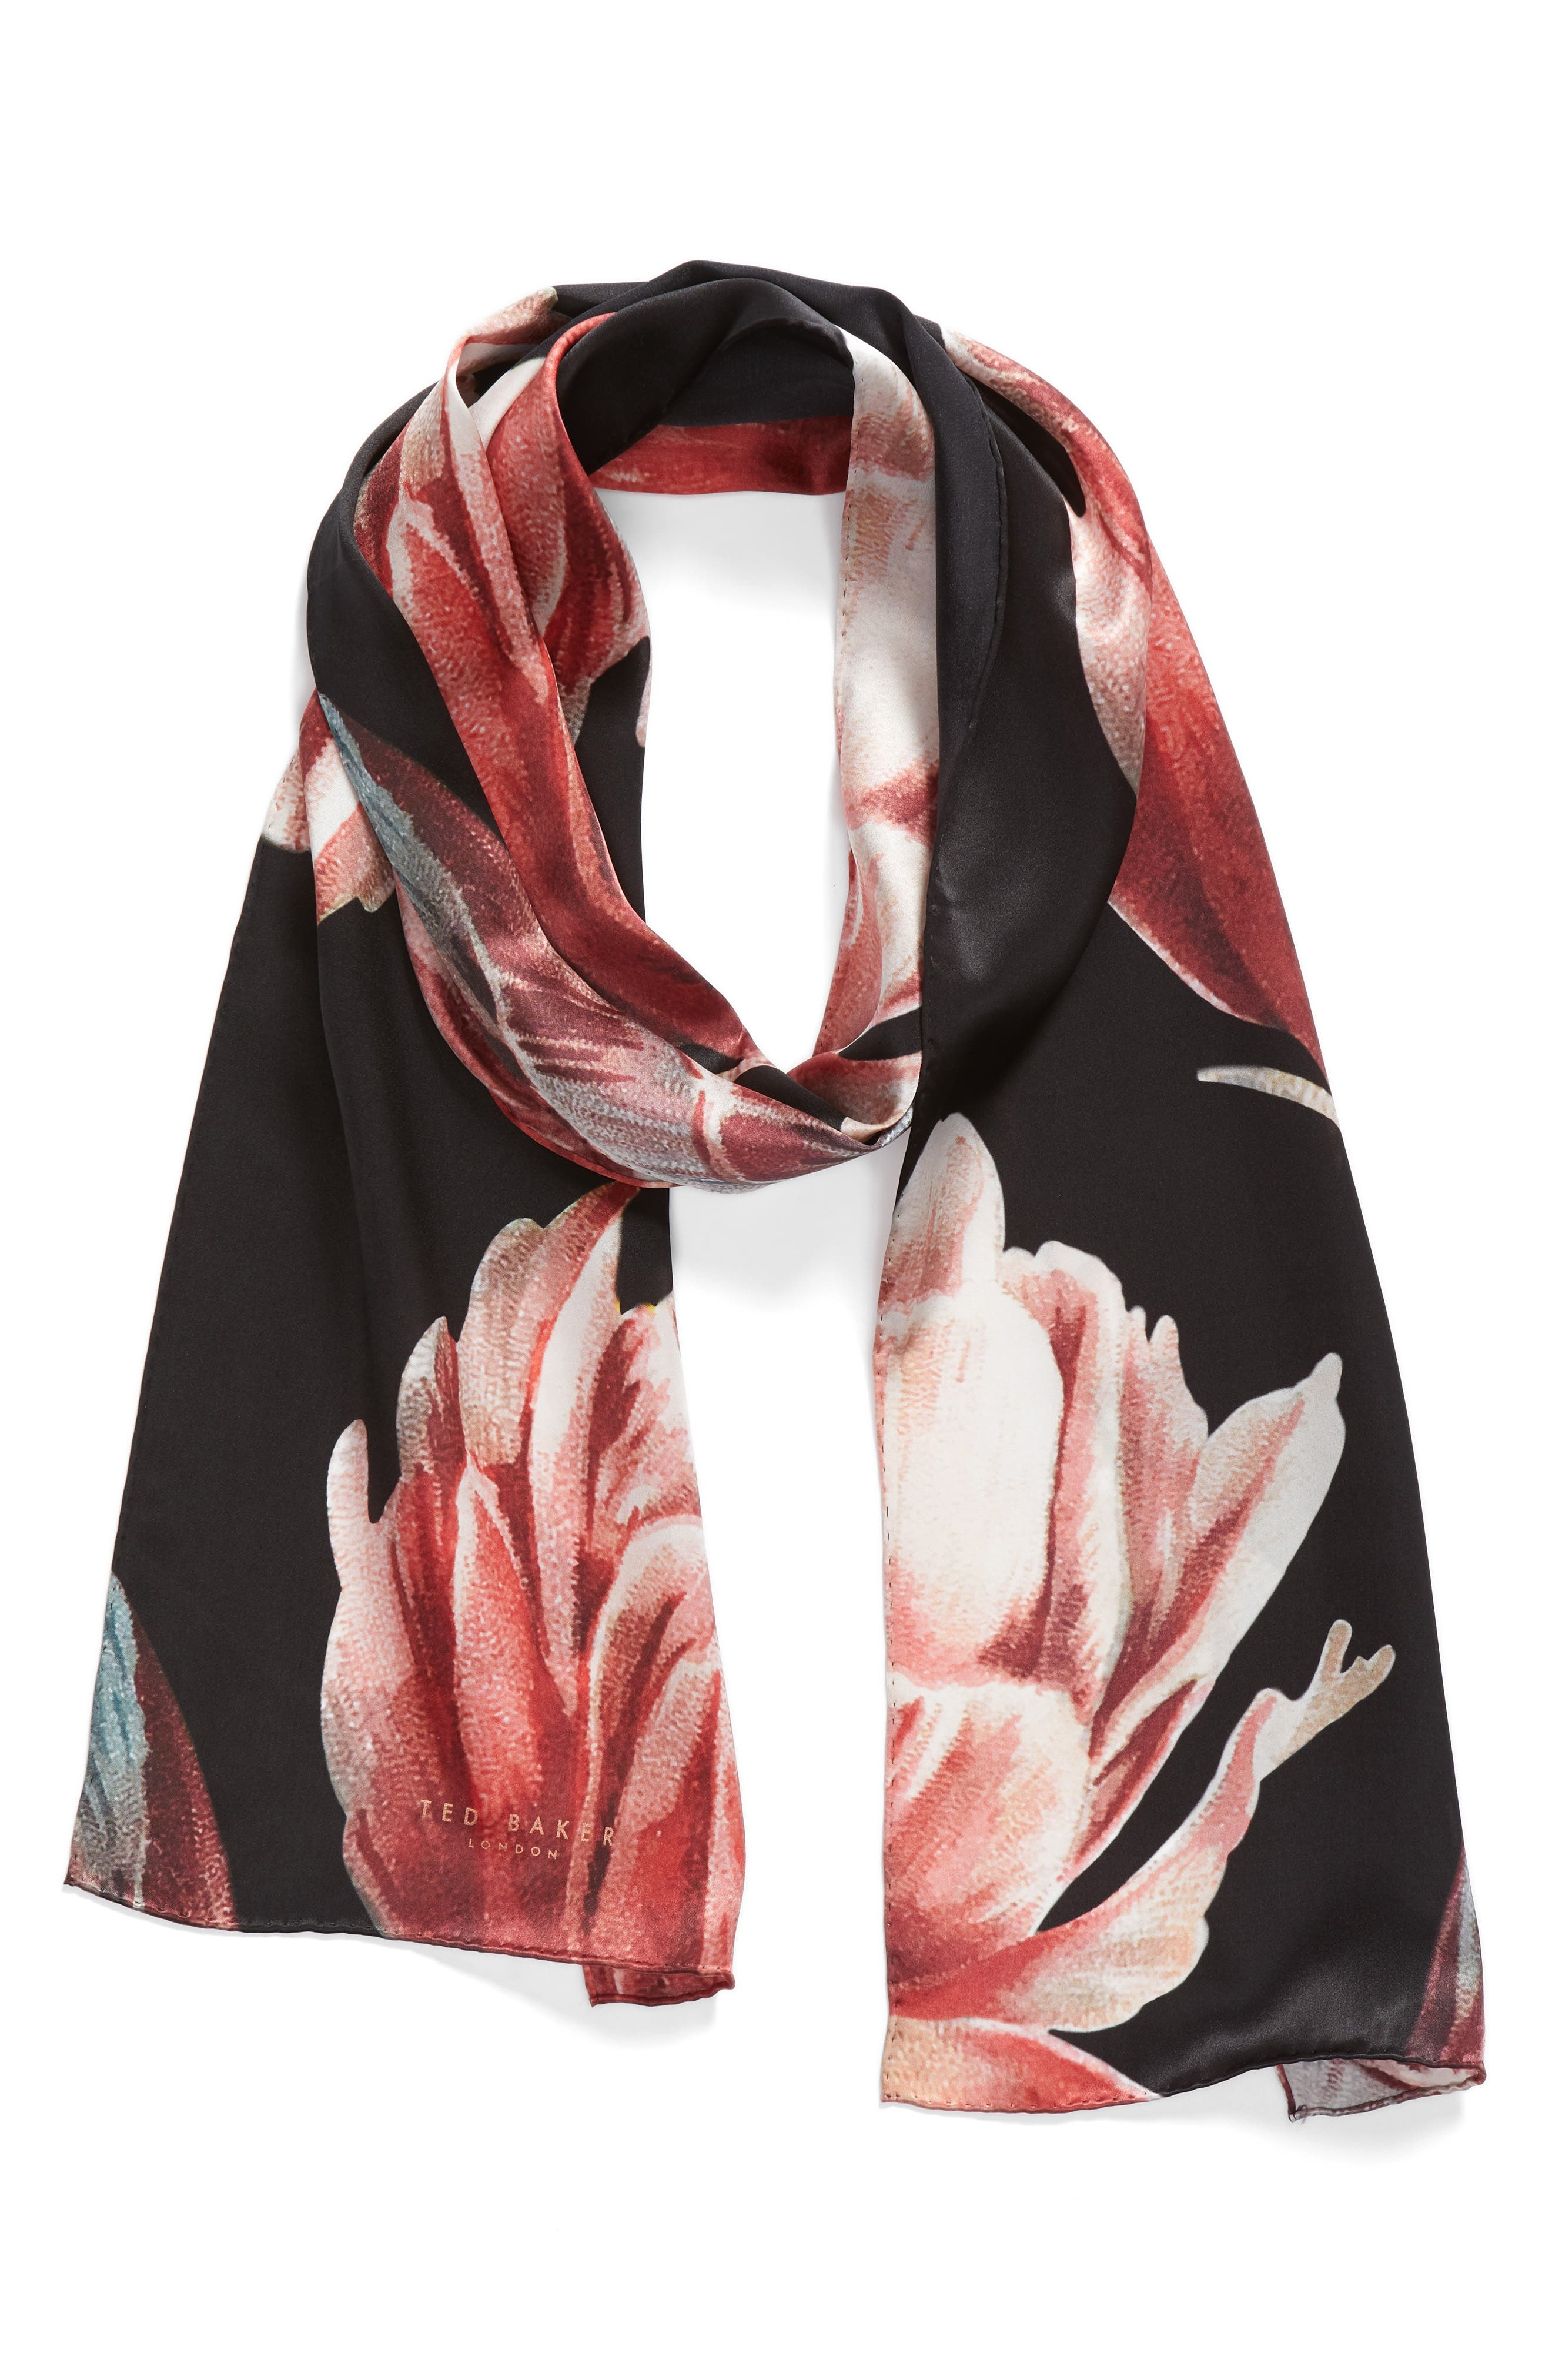 Tranquility Silk Scarf,                             Alternate thumbnail 2, color,                             001